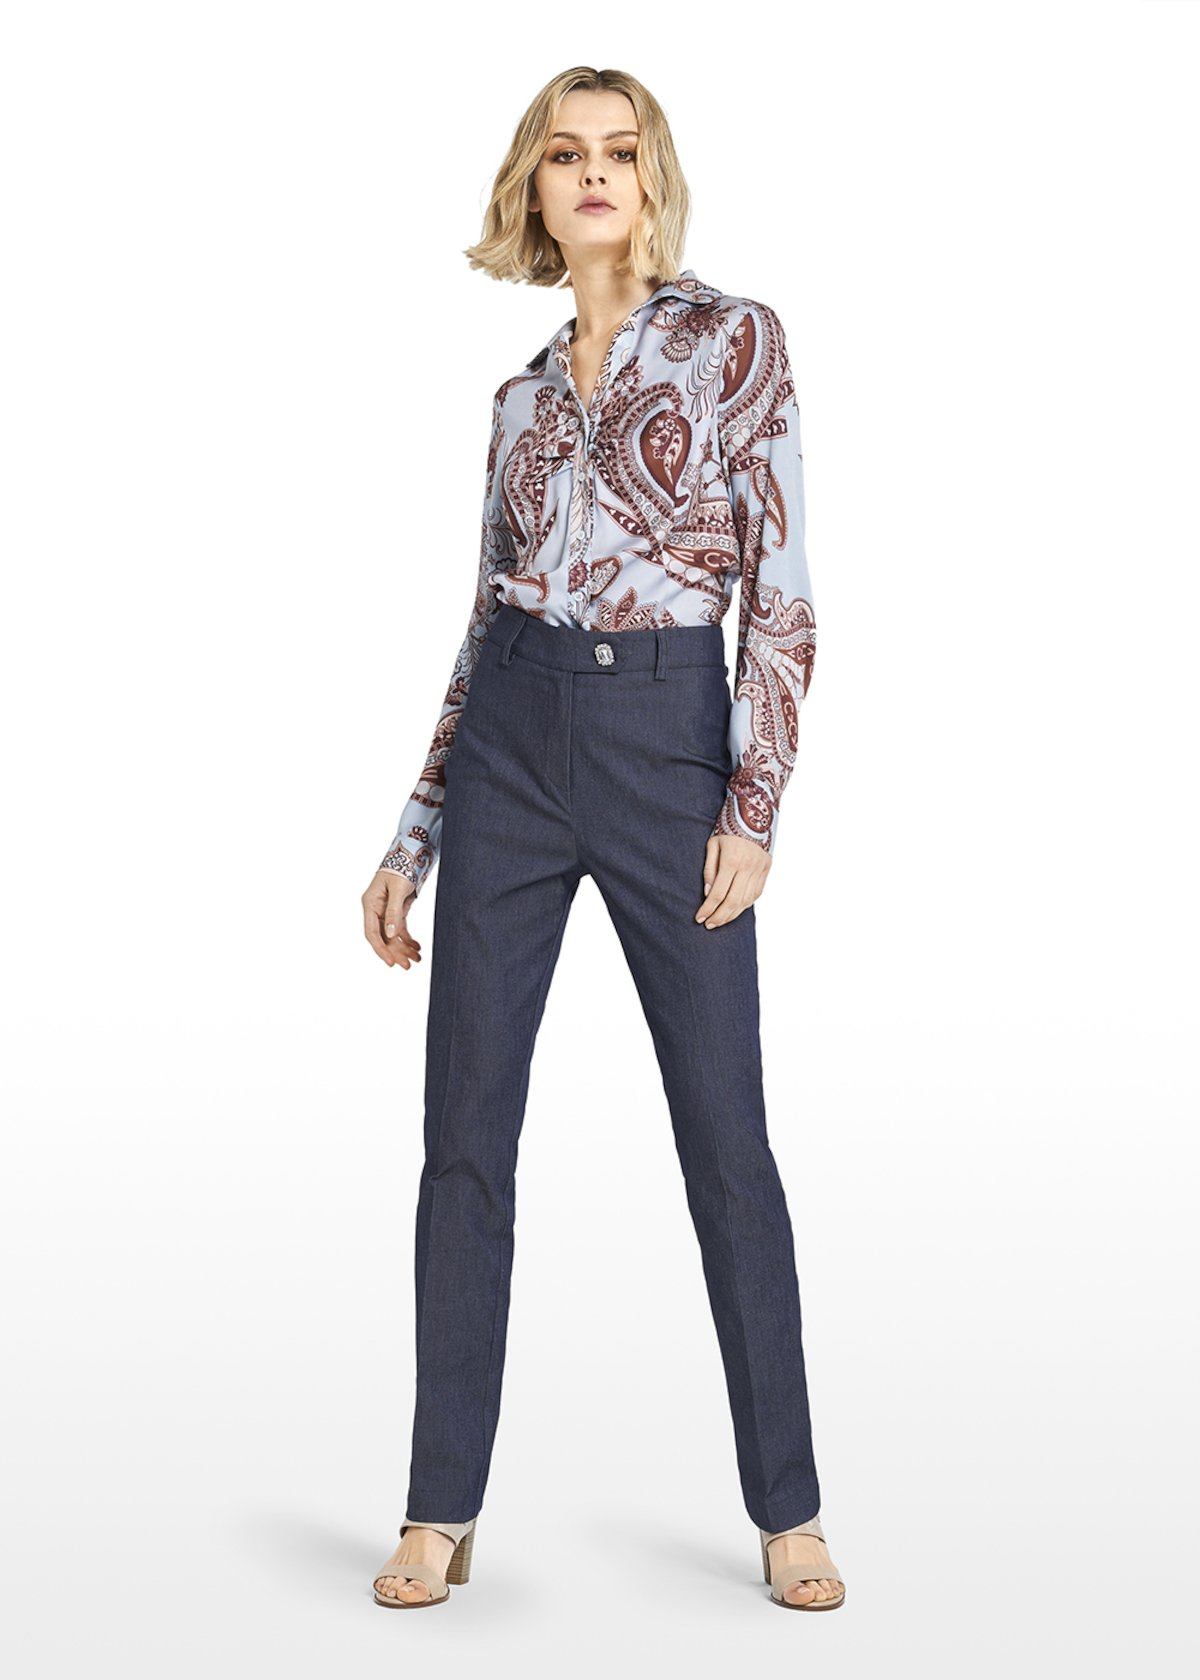 Charlize shirt jasmine pattern with collar - Sky / Tobacco Fantasia - Woman - Category image